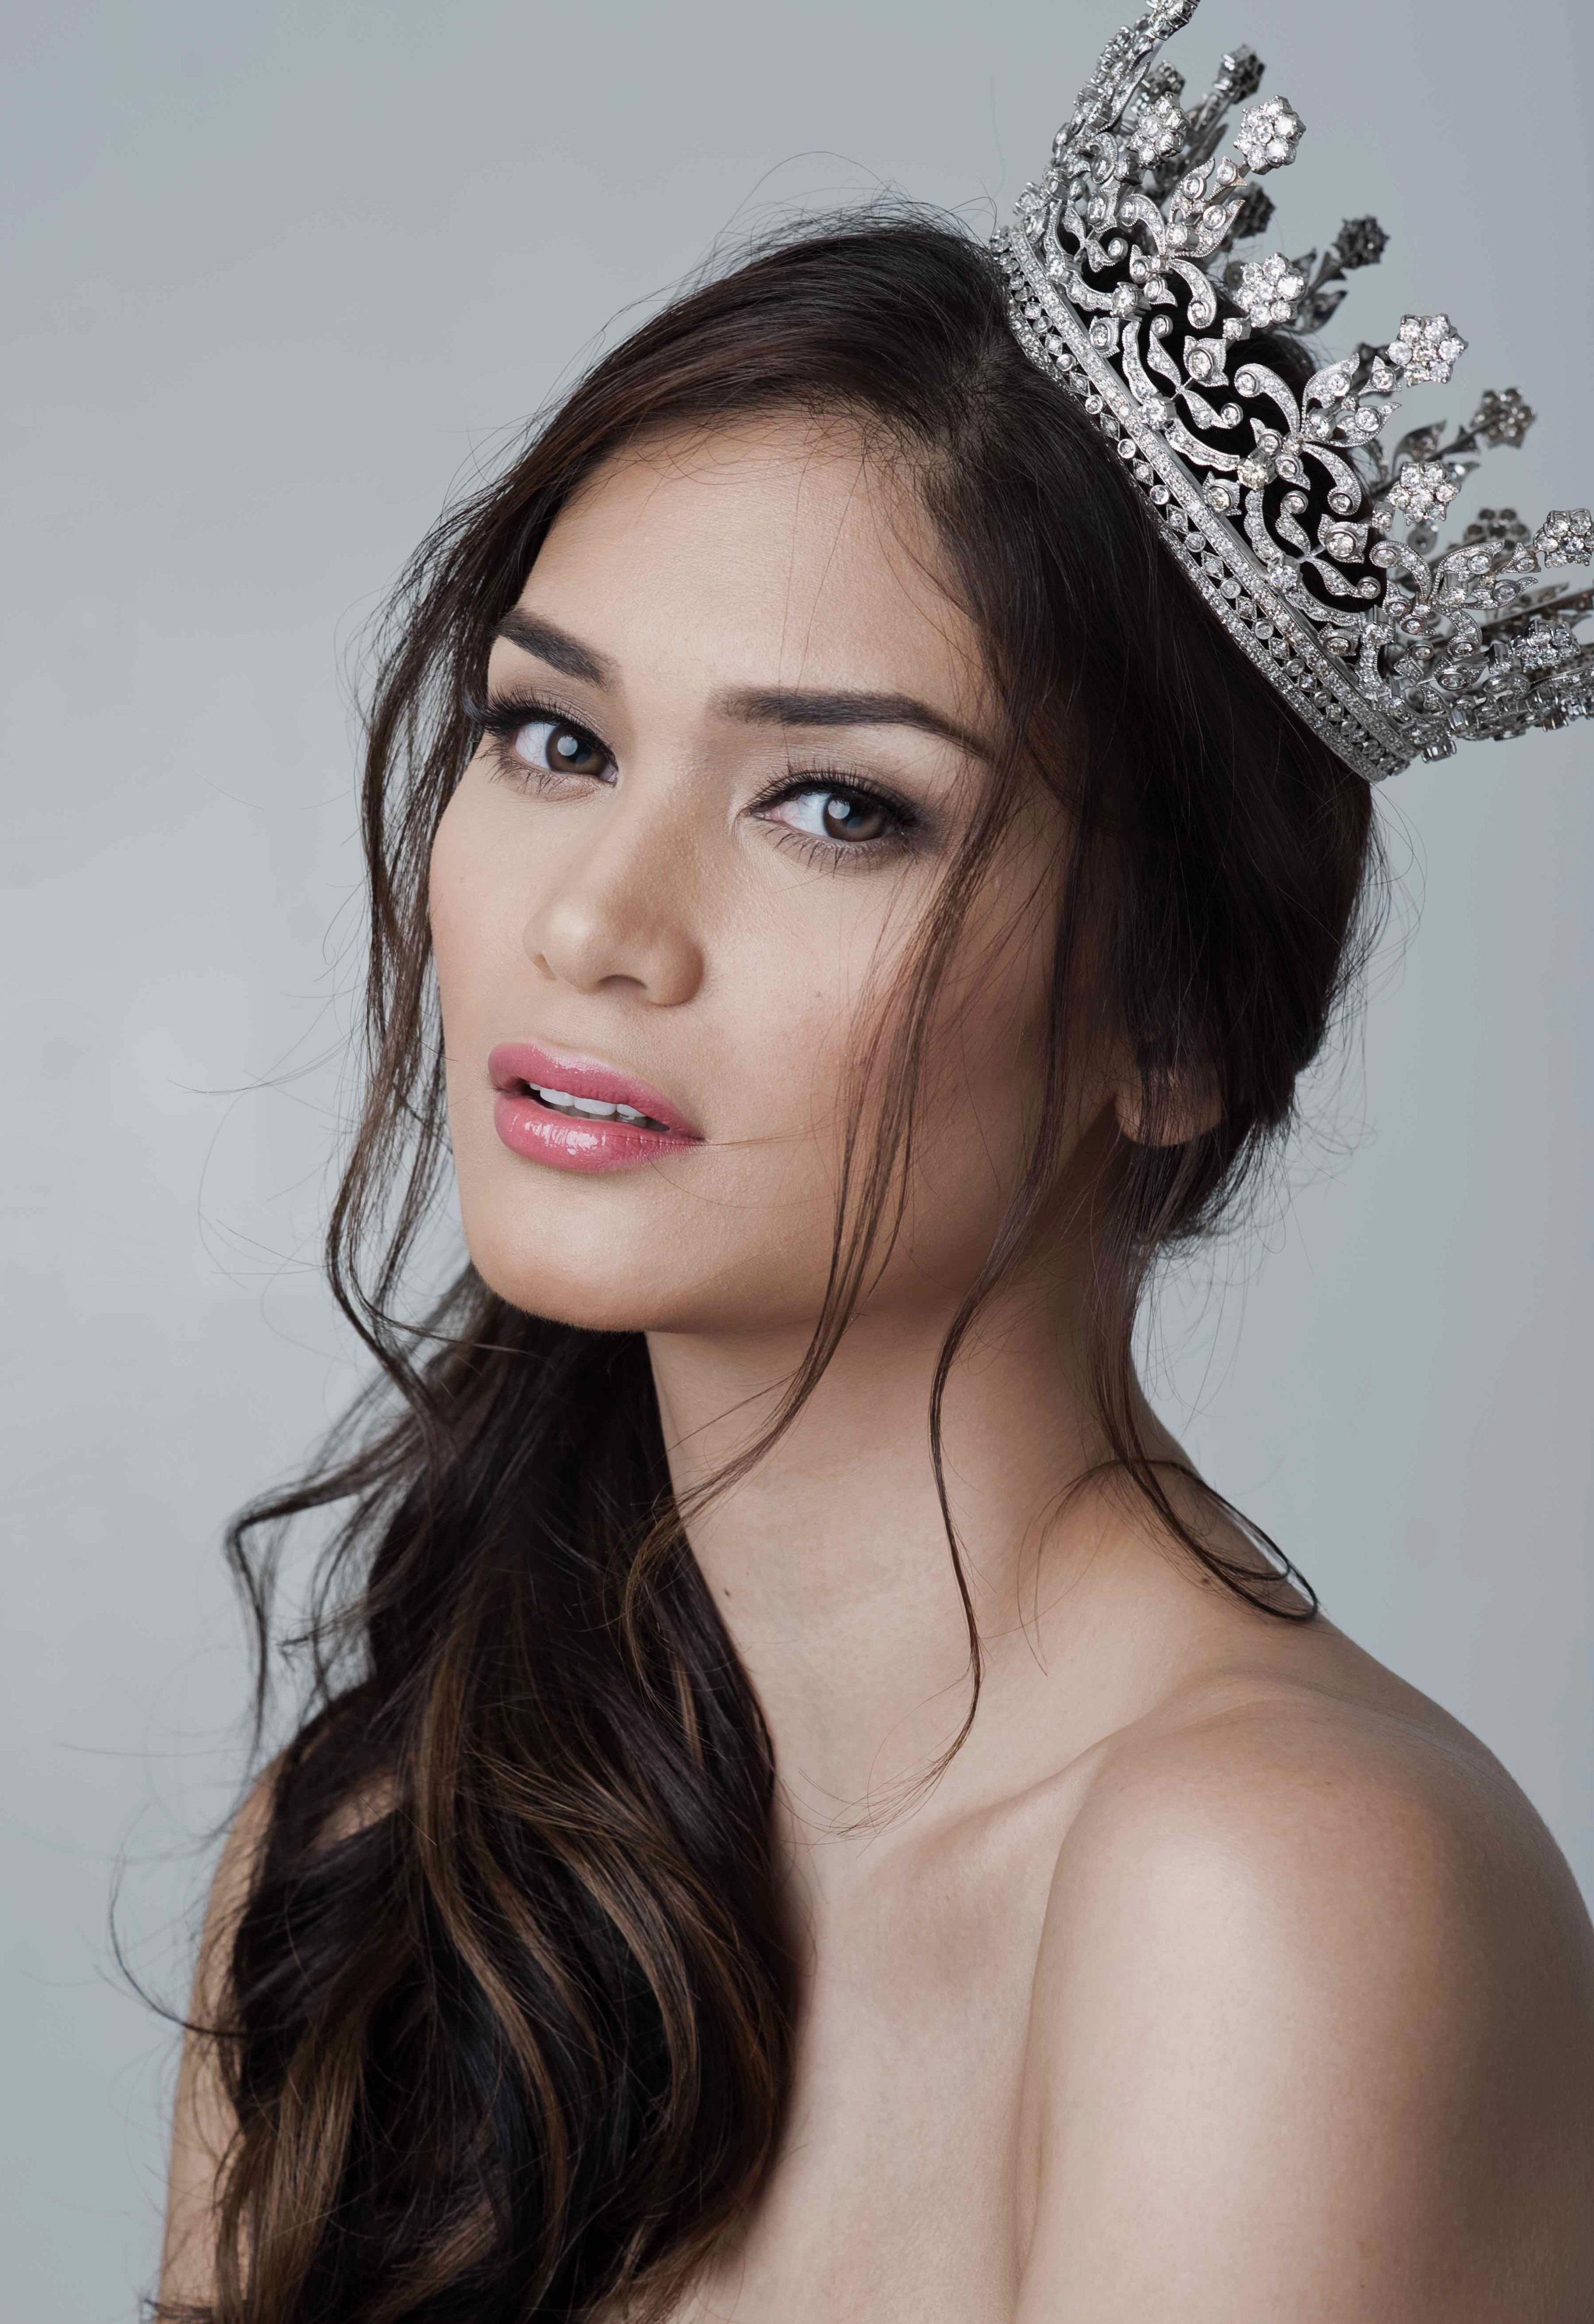 Images Pia Wurtzbach naked (38 photos), Topless, Paparazzi, Feet, braless 2015